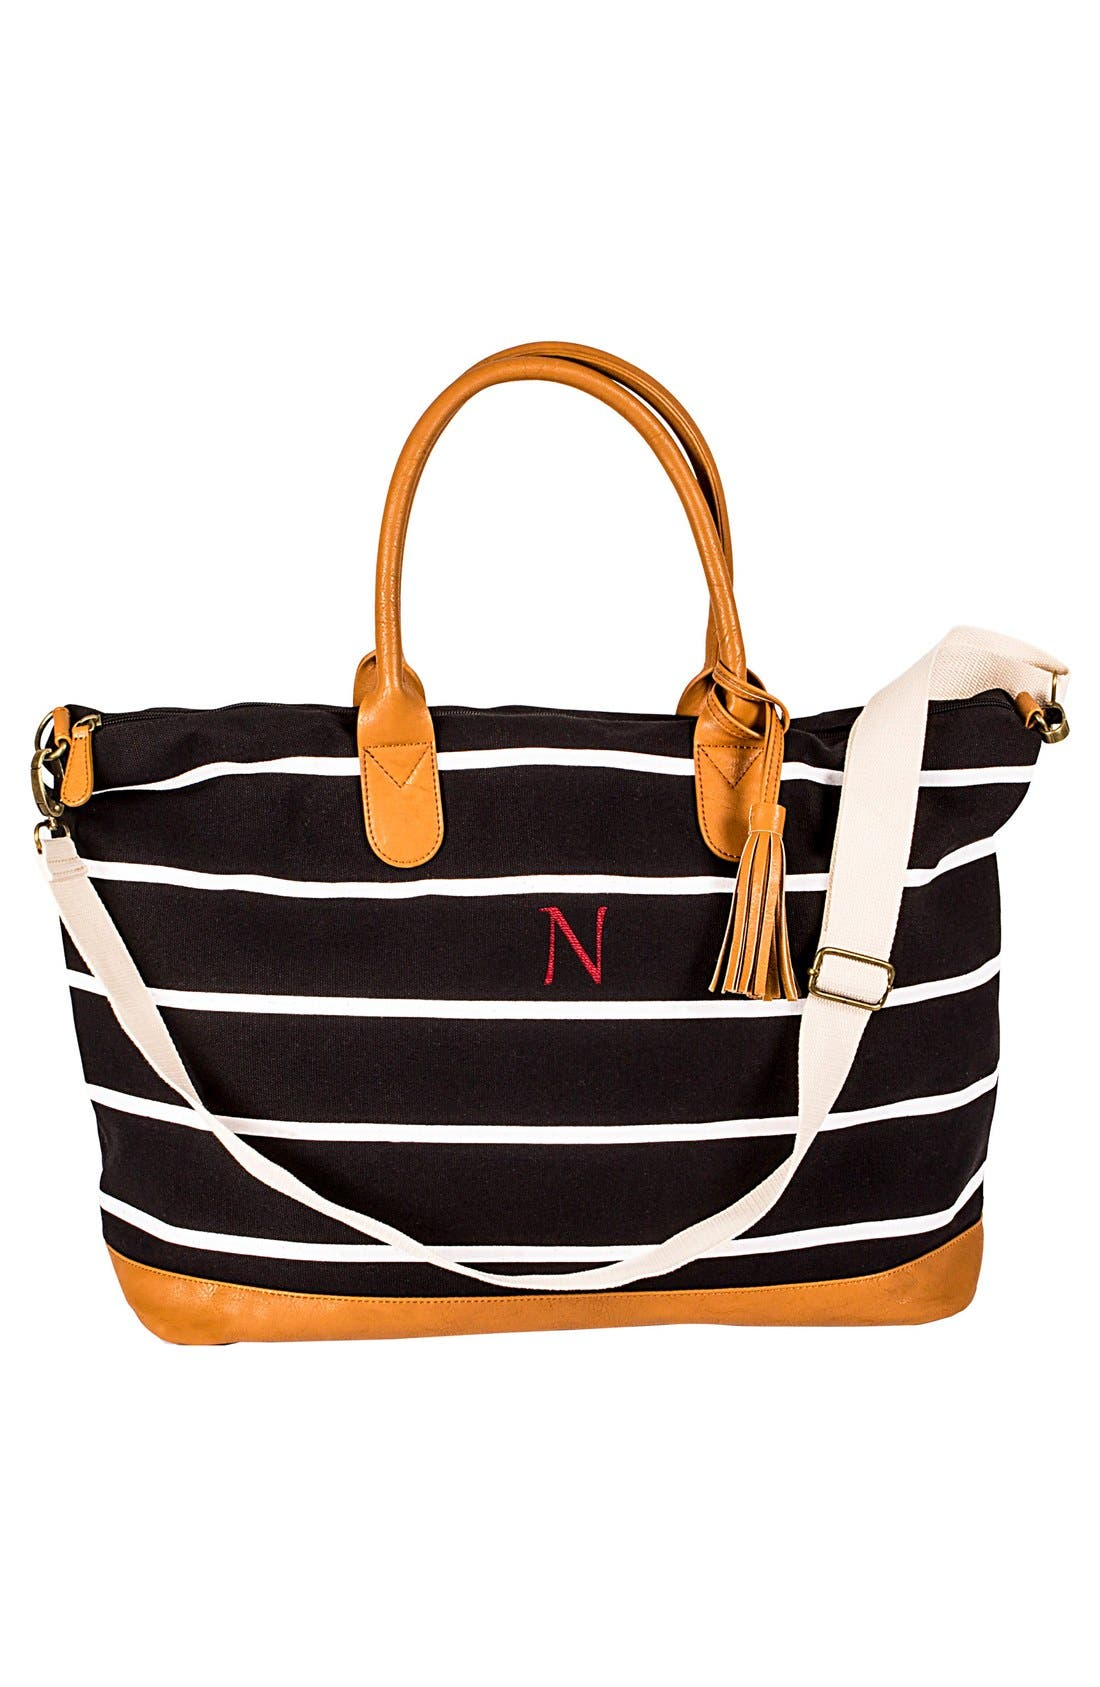 Cathy's Concepts Monogram Oversized Weekender Tote